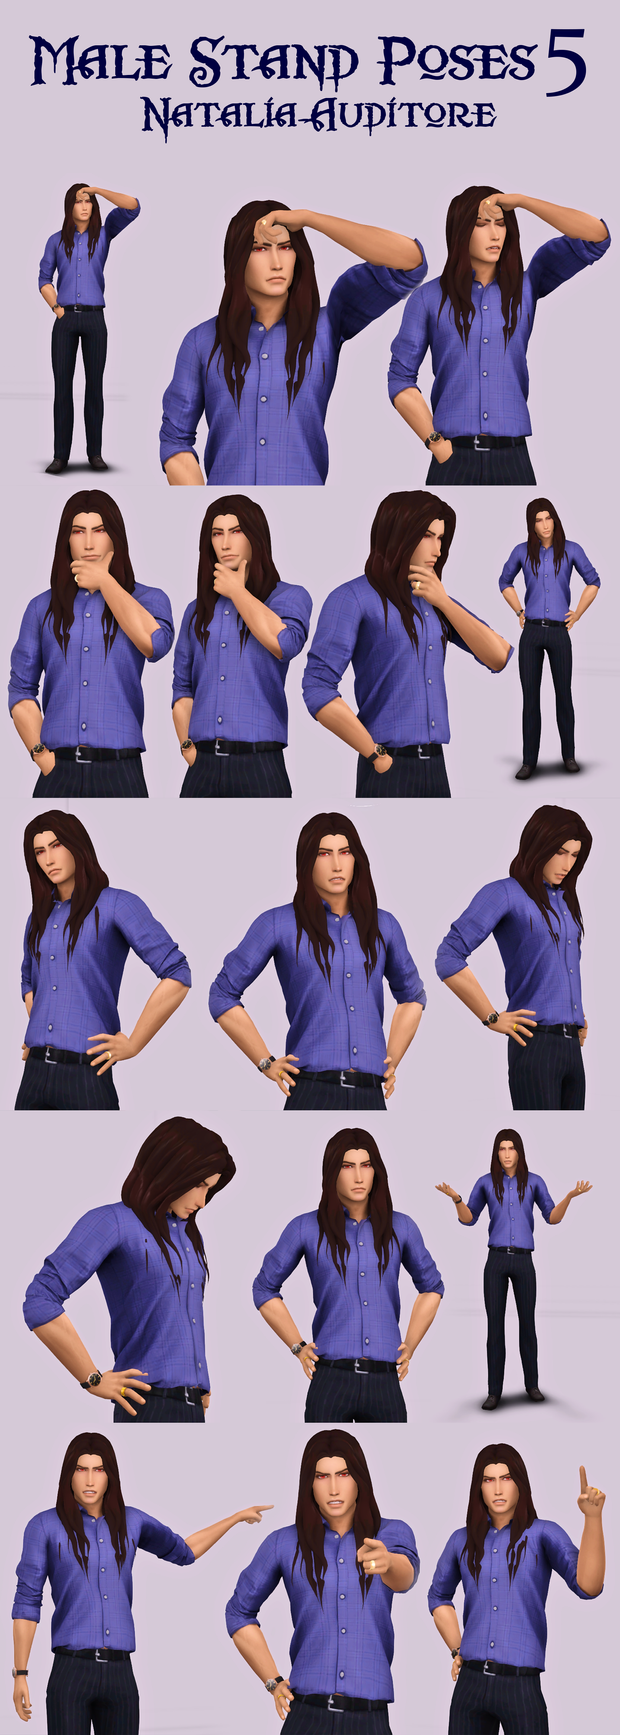 Male Stand Poses 5 Natalia Auditore On Patreon In 2020 Poses Sims 4 Sims